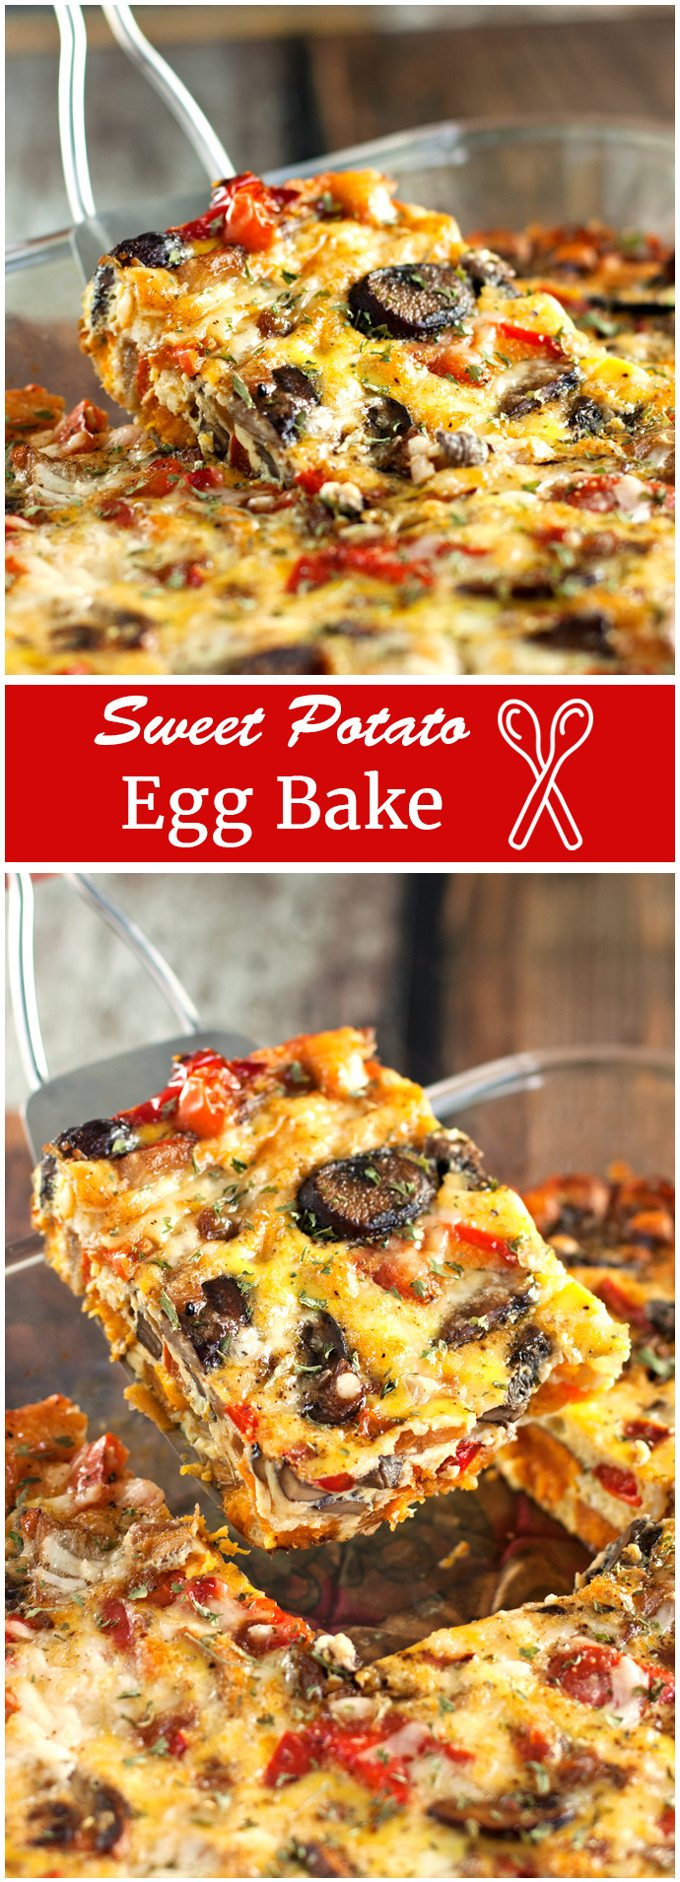 Egg bake Savory eggs packed with sweet potatoes, mushrooms, onions, peppers, and cheese - bursting with delicious flavors and colors!